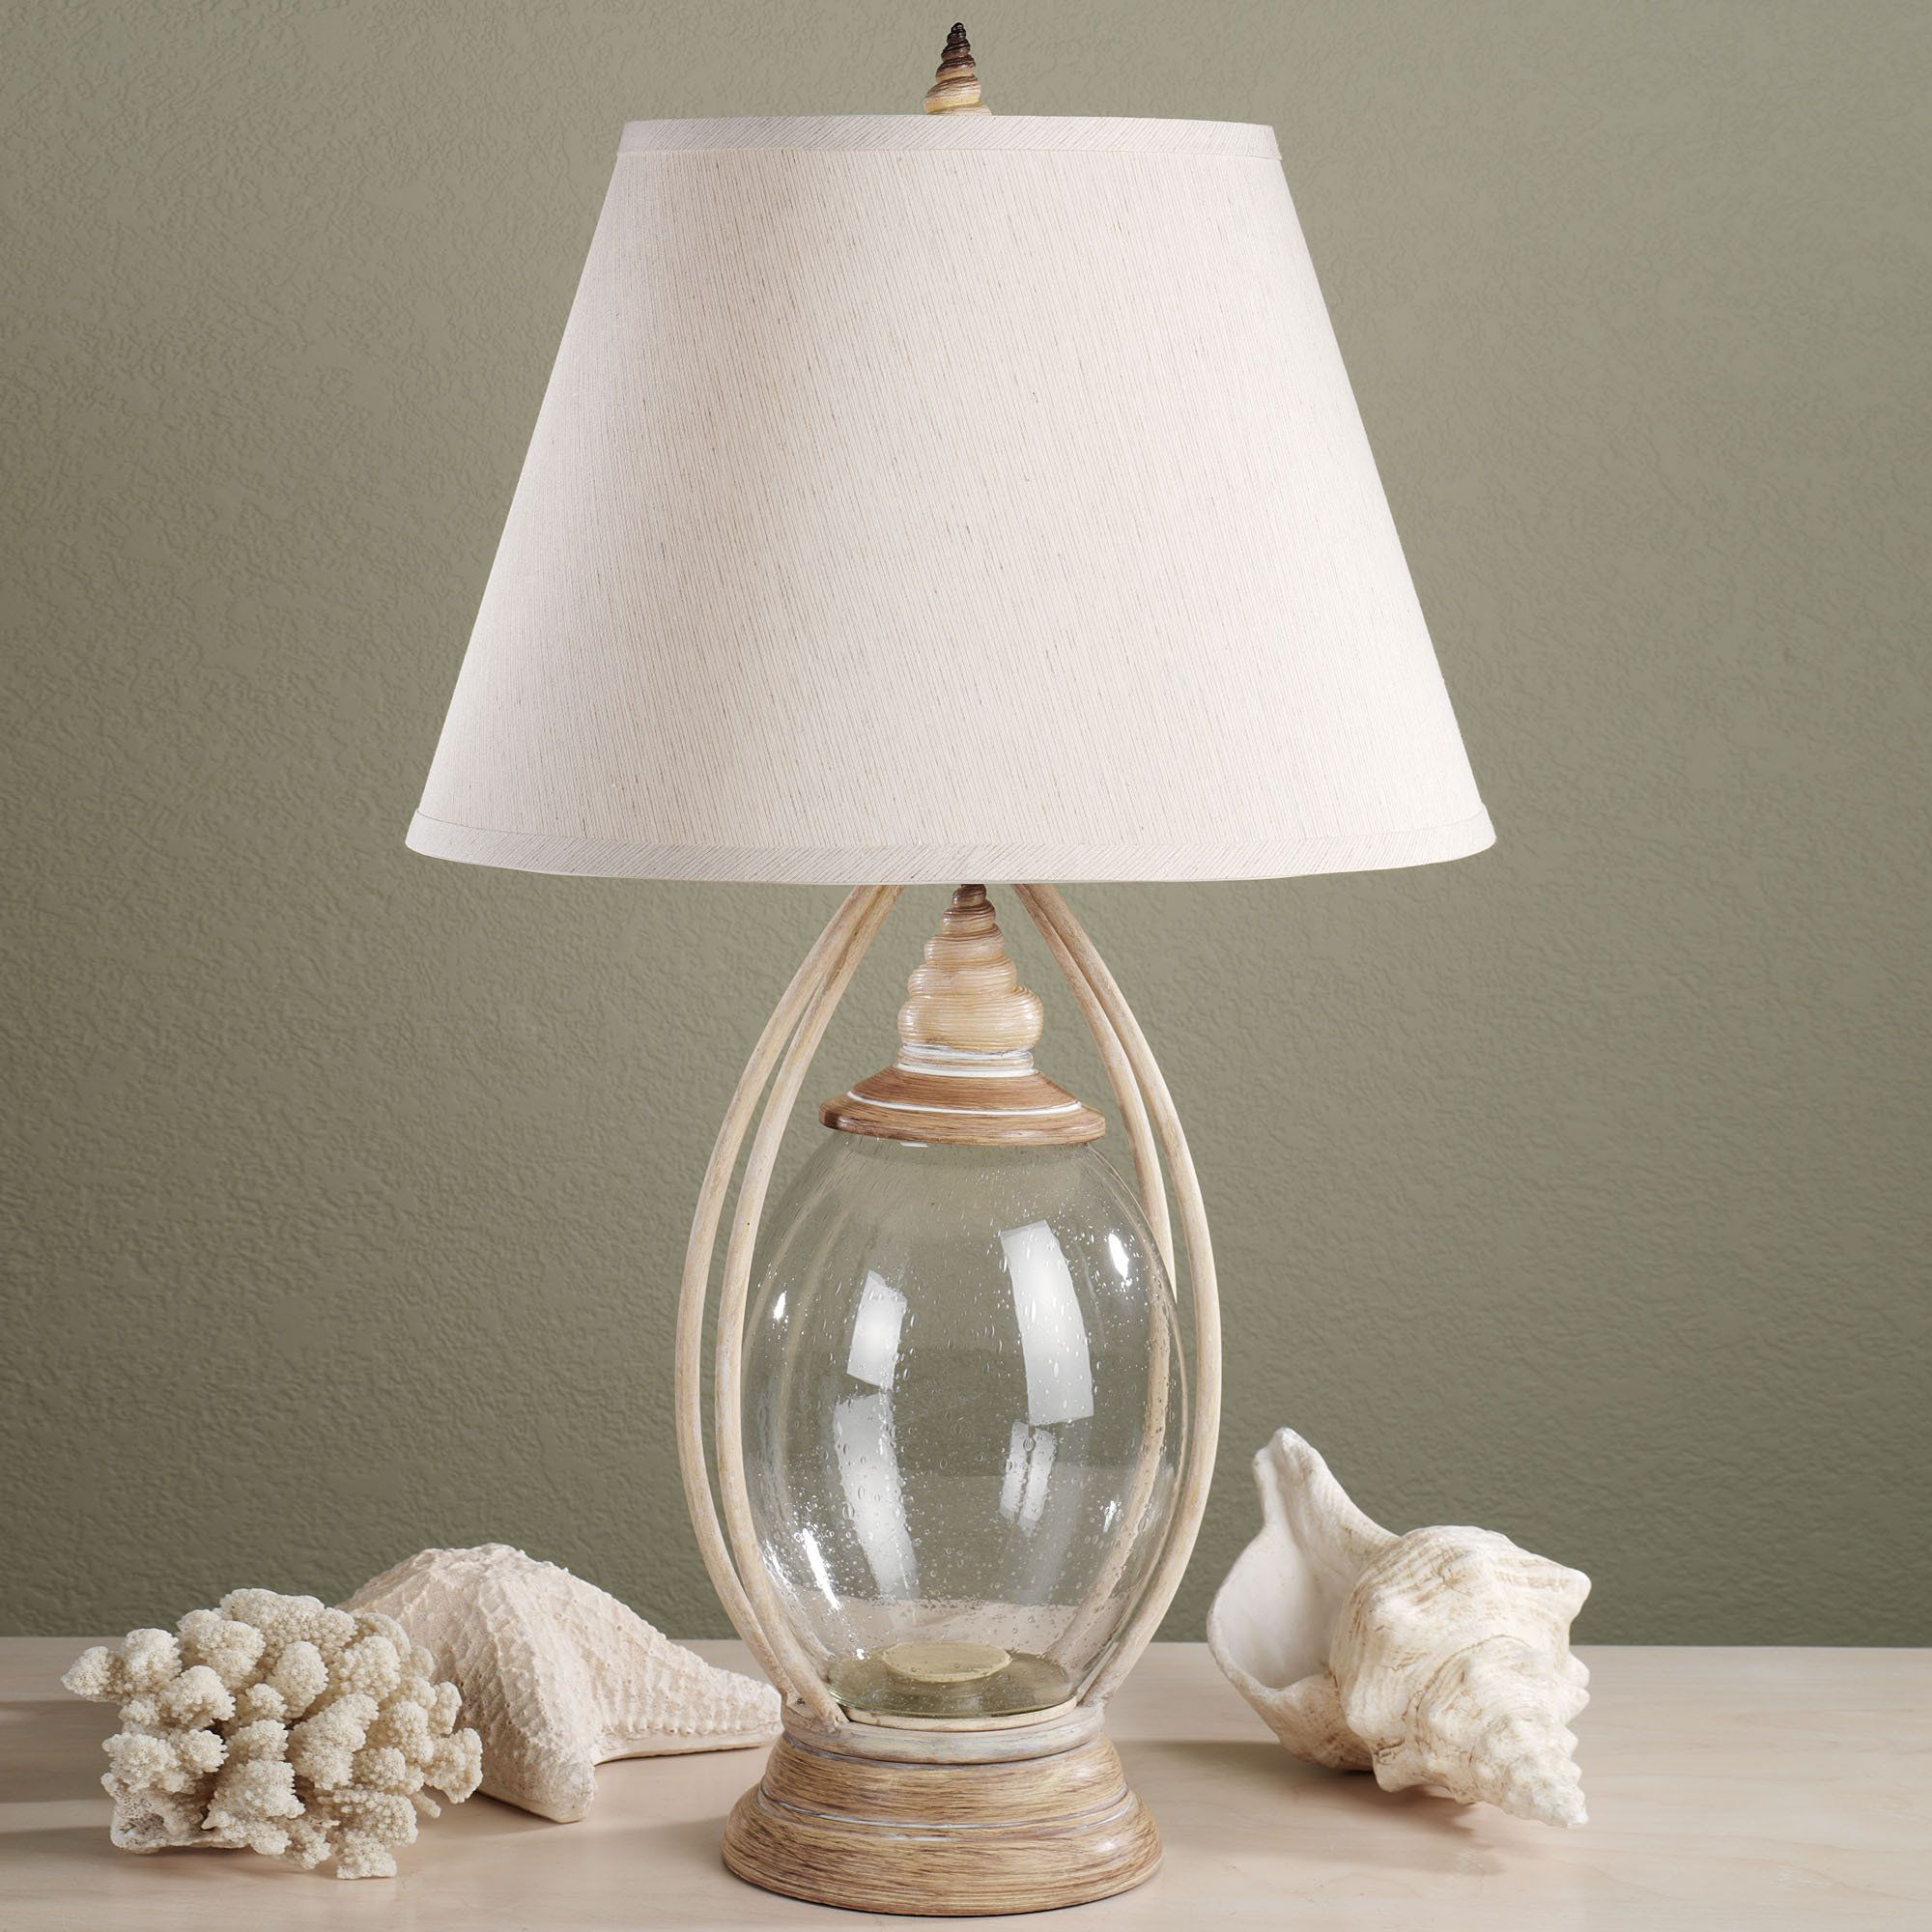 Sea Treasures Fillable Glass Table Lamp | Glass table lamps, Glass ...